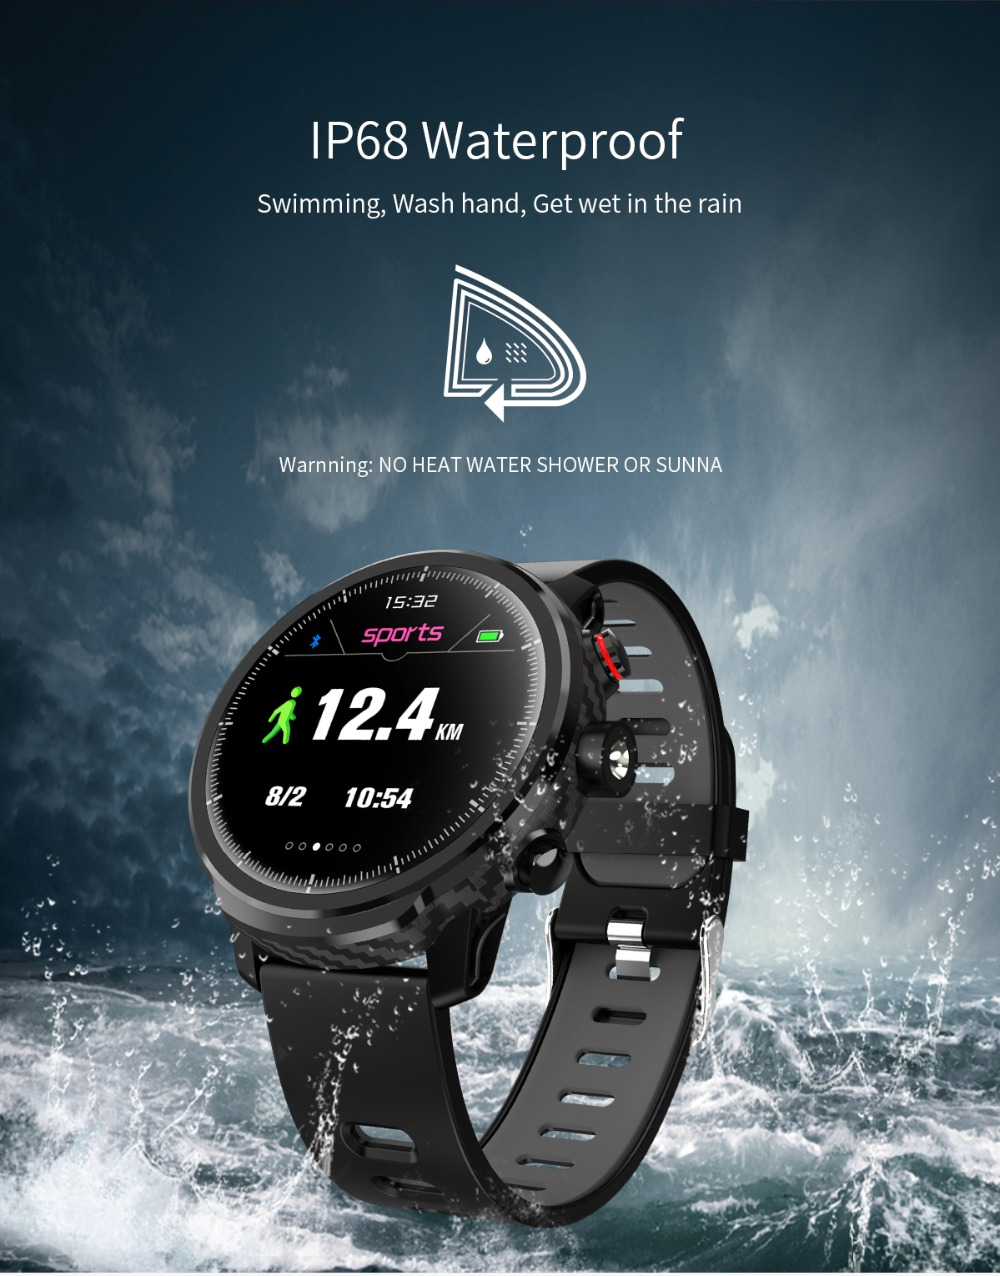 LEMFO L5 IP68 Waterproof Smart Watch For Men With Sports Mode Heart Rate Monitoring And Weather Forecast 7